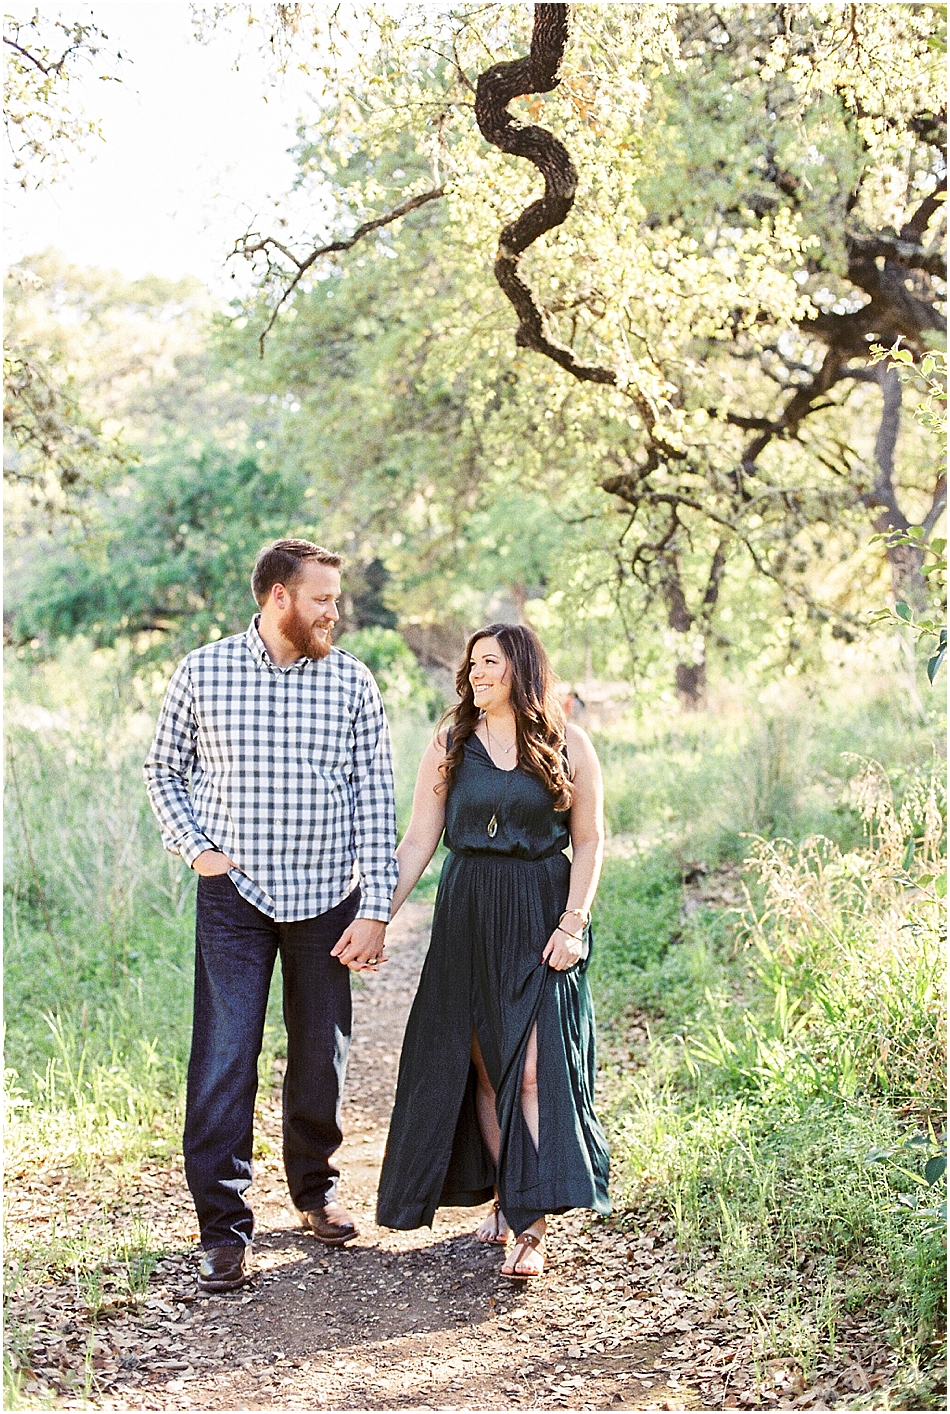 Brooke + Nick | Fine Art Creek Side Engagement | Film | Emilie Anne Photography-8.jpg